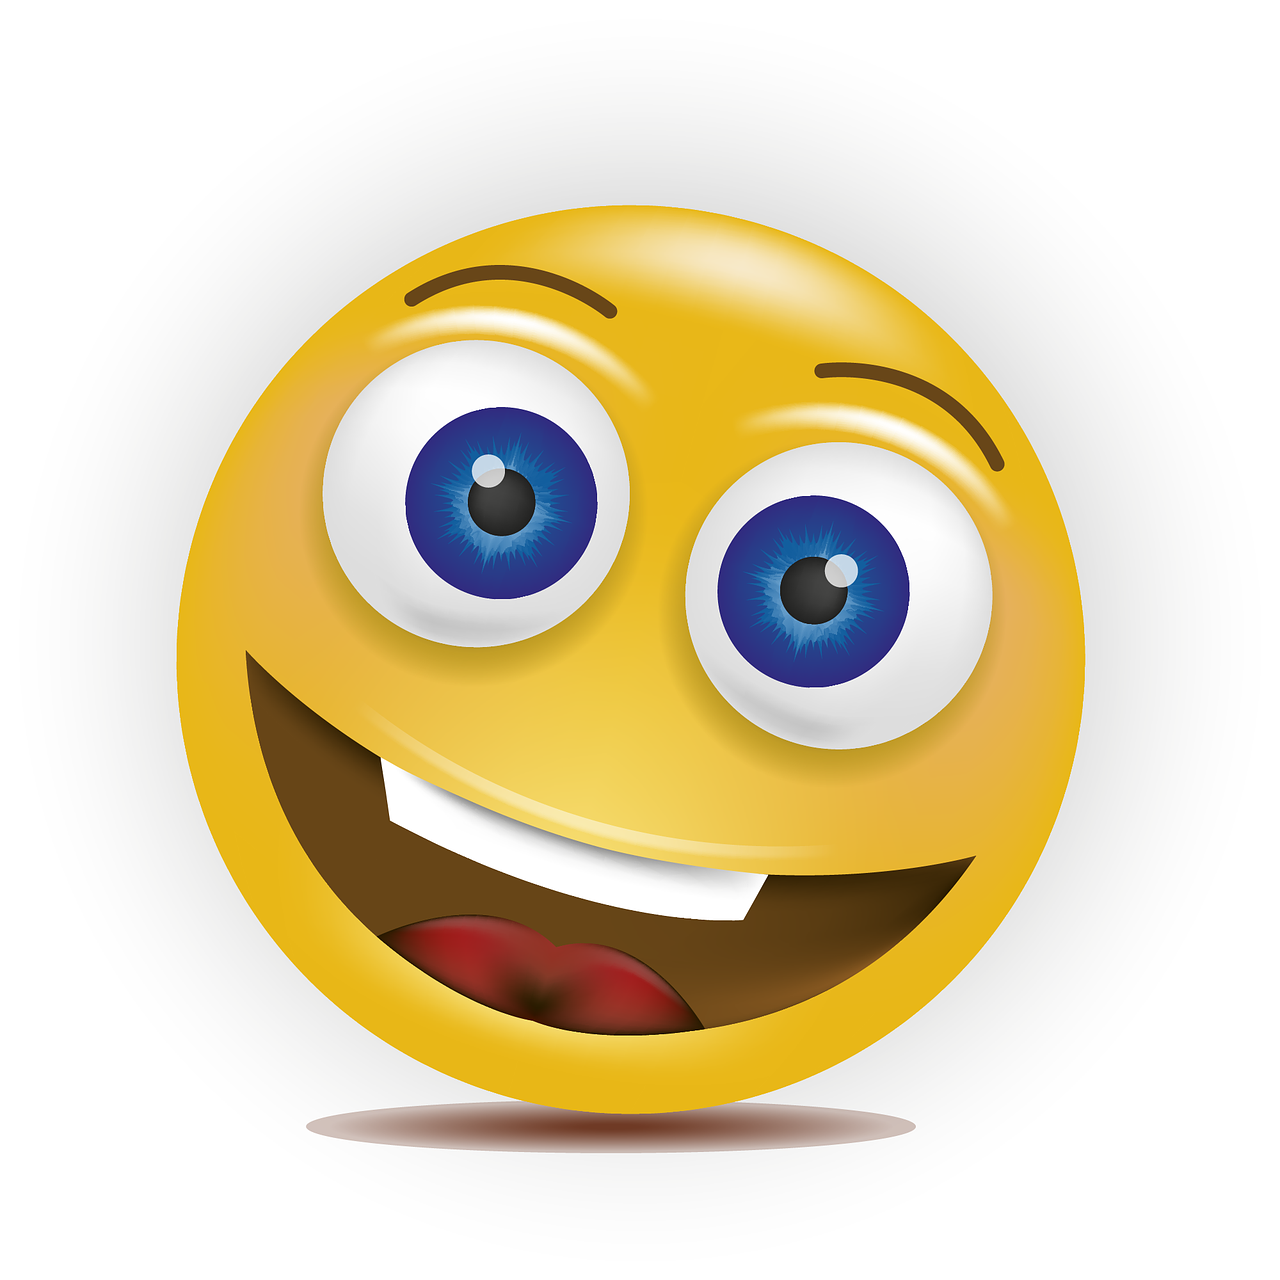 Laughter,joy,emoji,illustration,happiness - free photo from